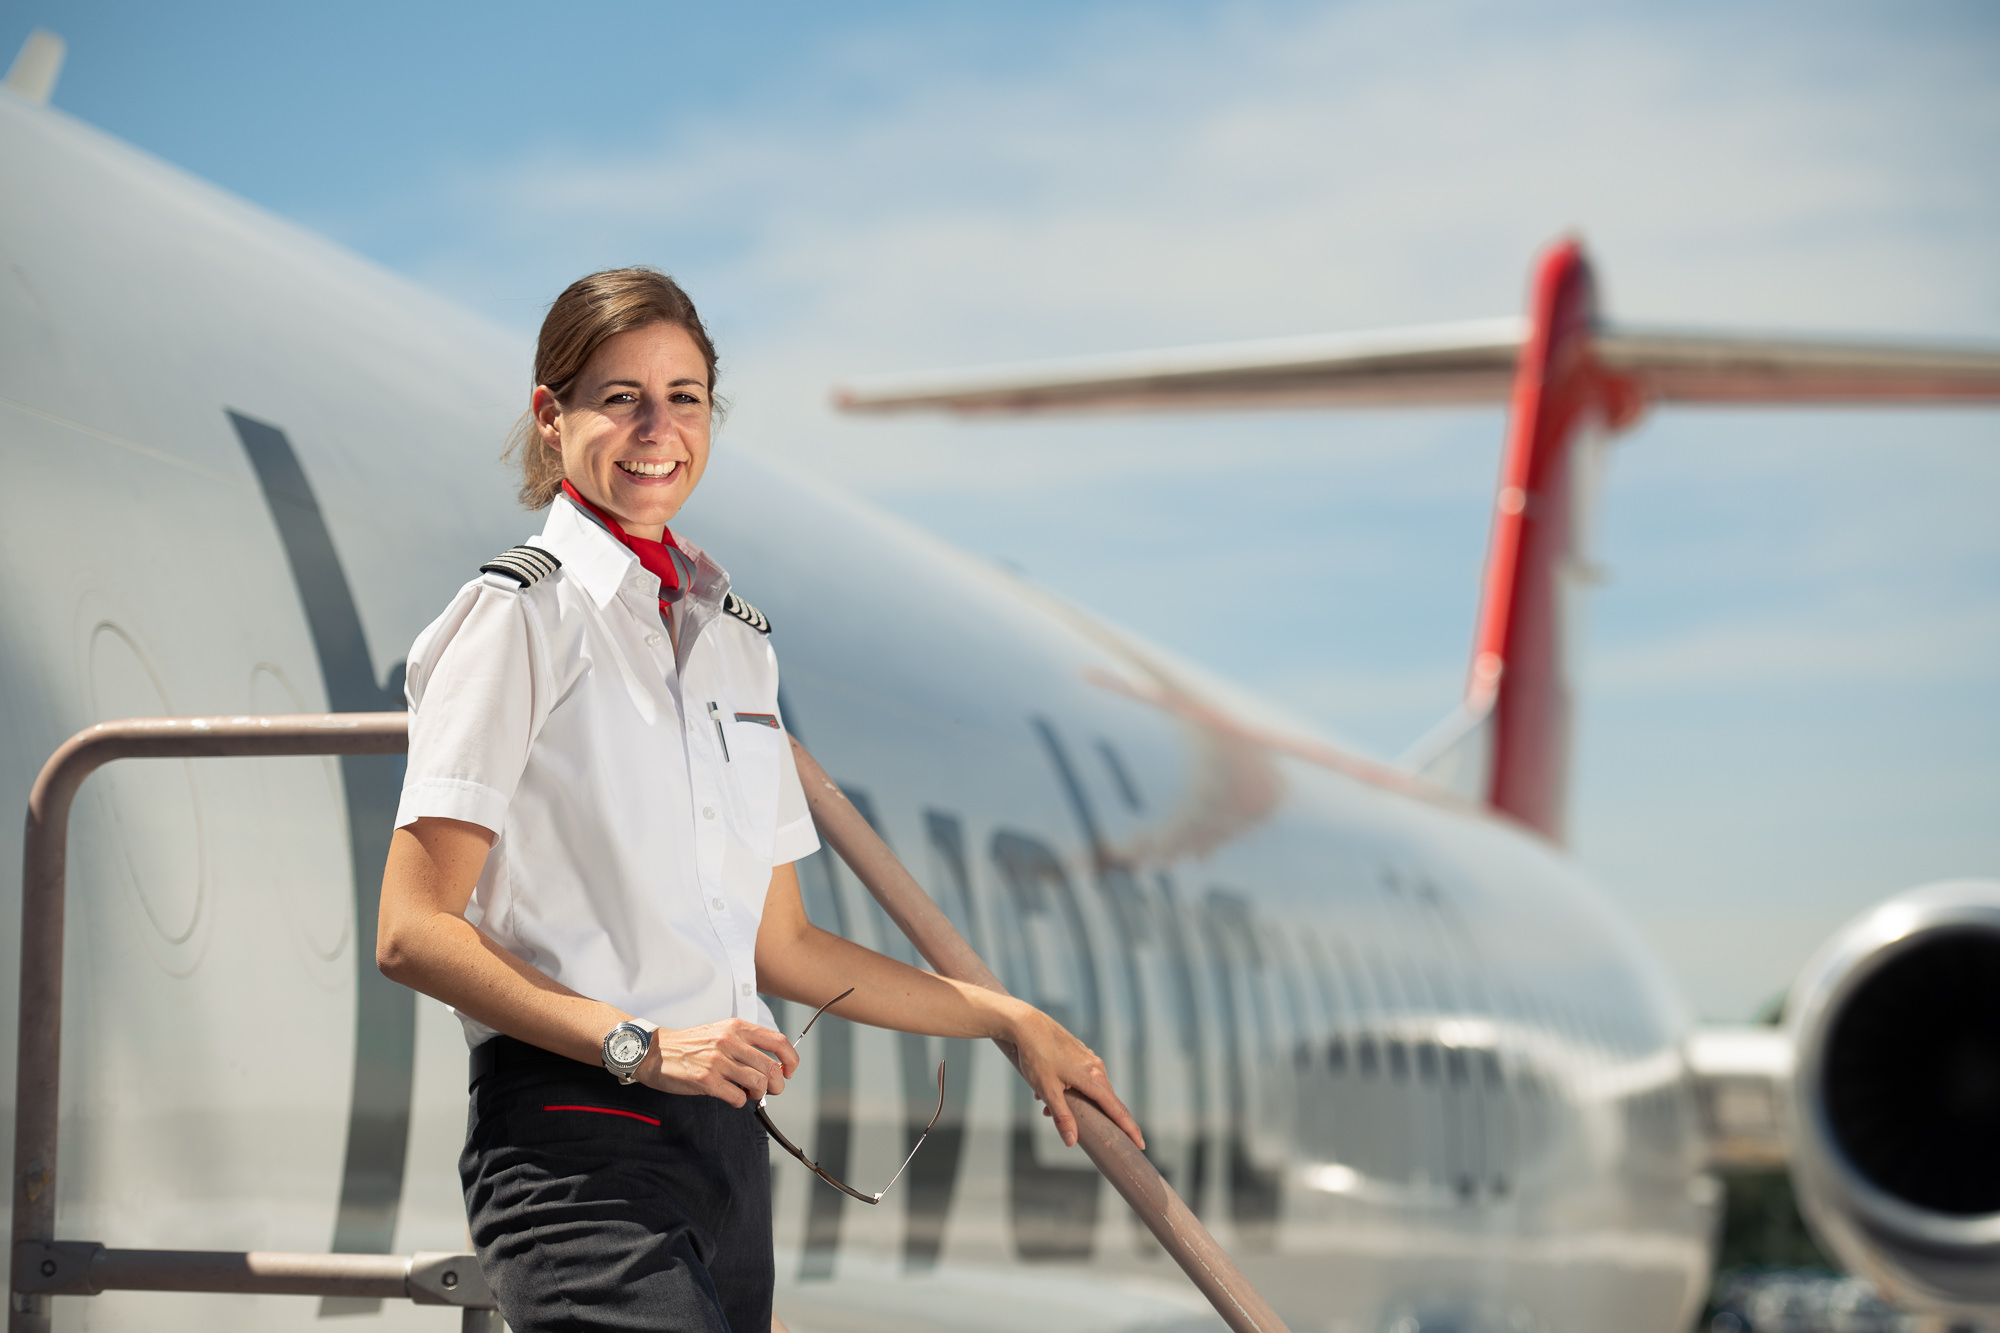 Female Pilot Nadine Hachen in front of Helvetic Airways plane in Zurich Airport